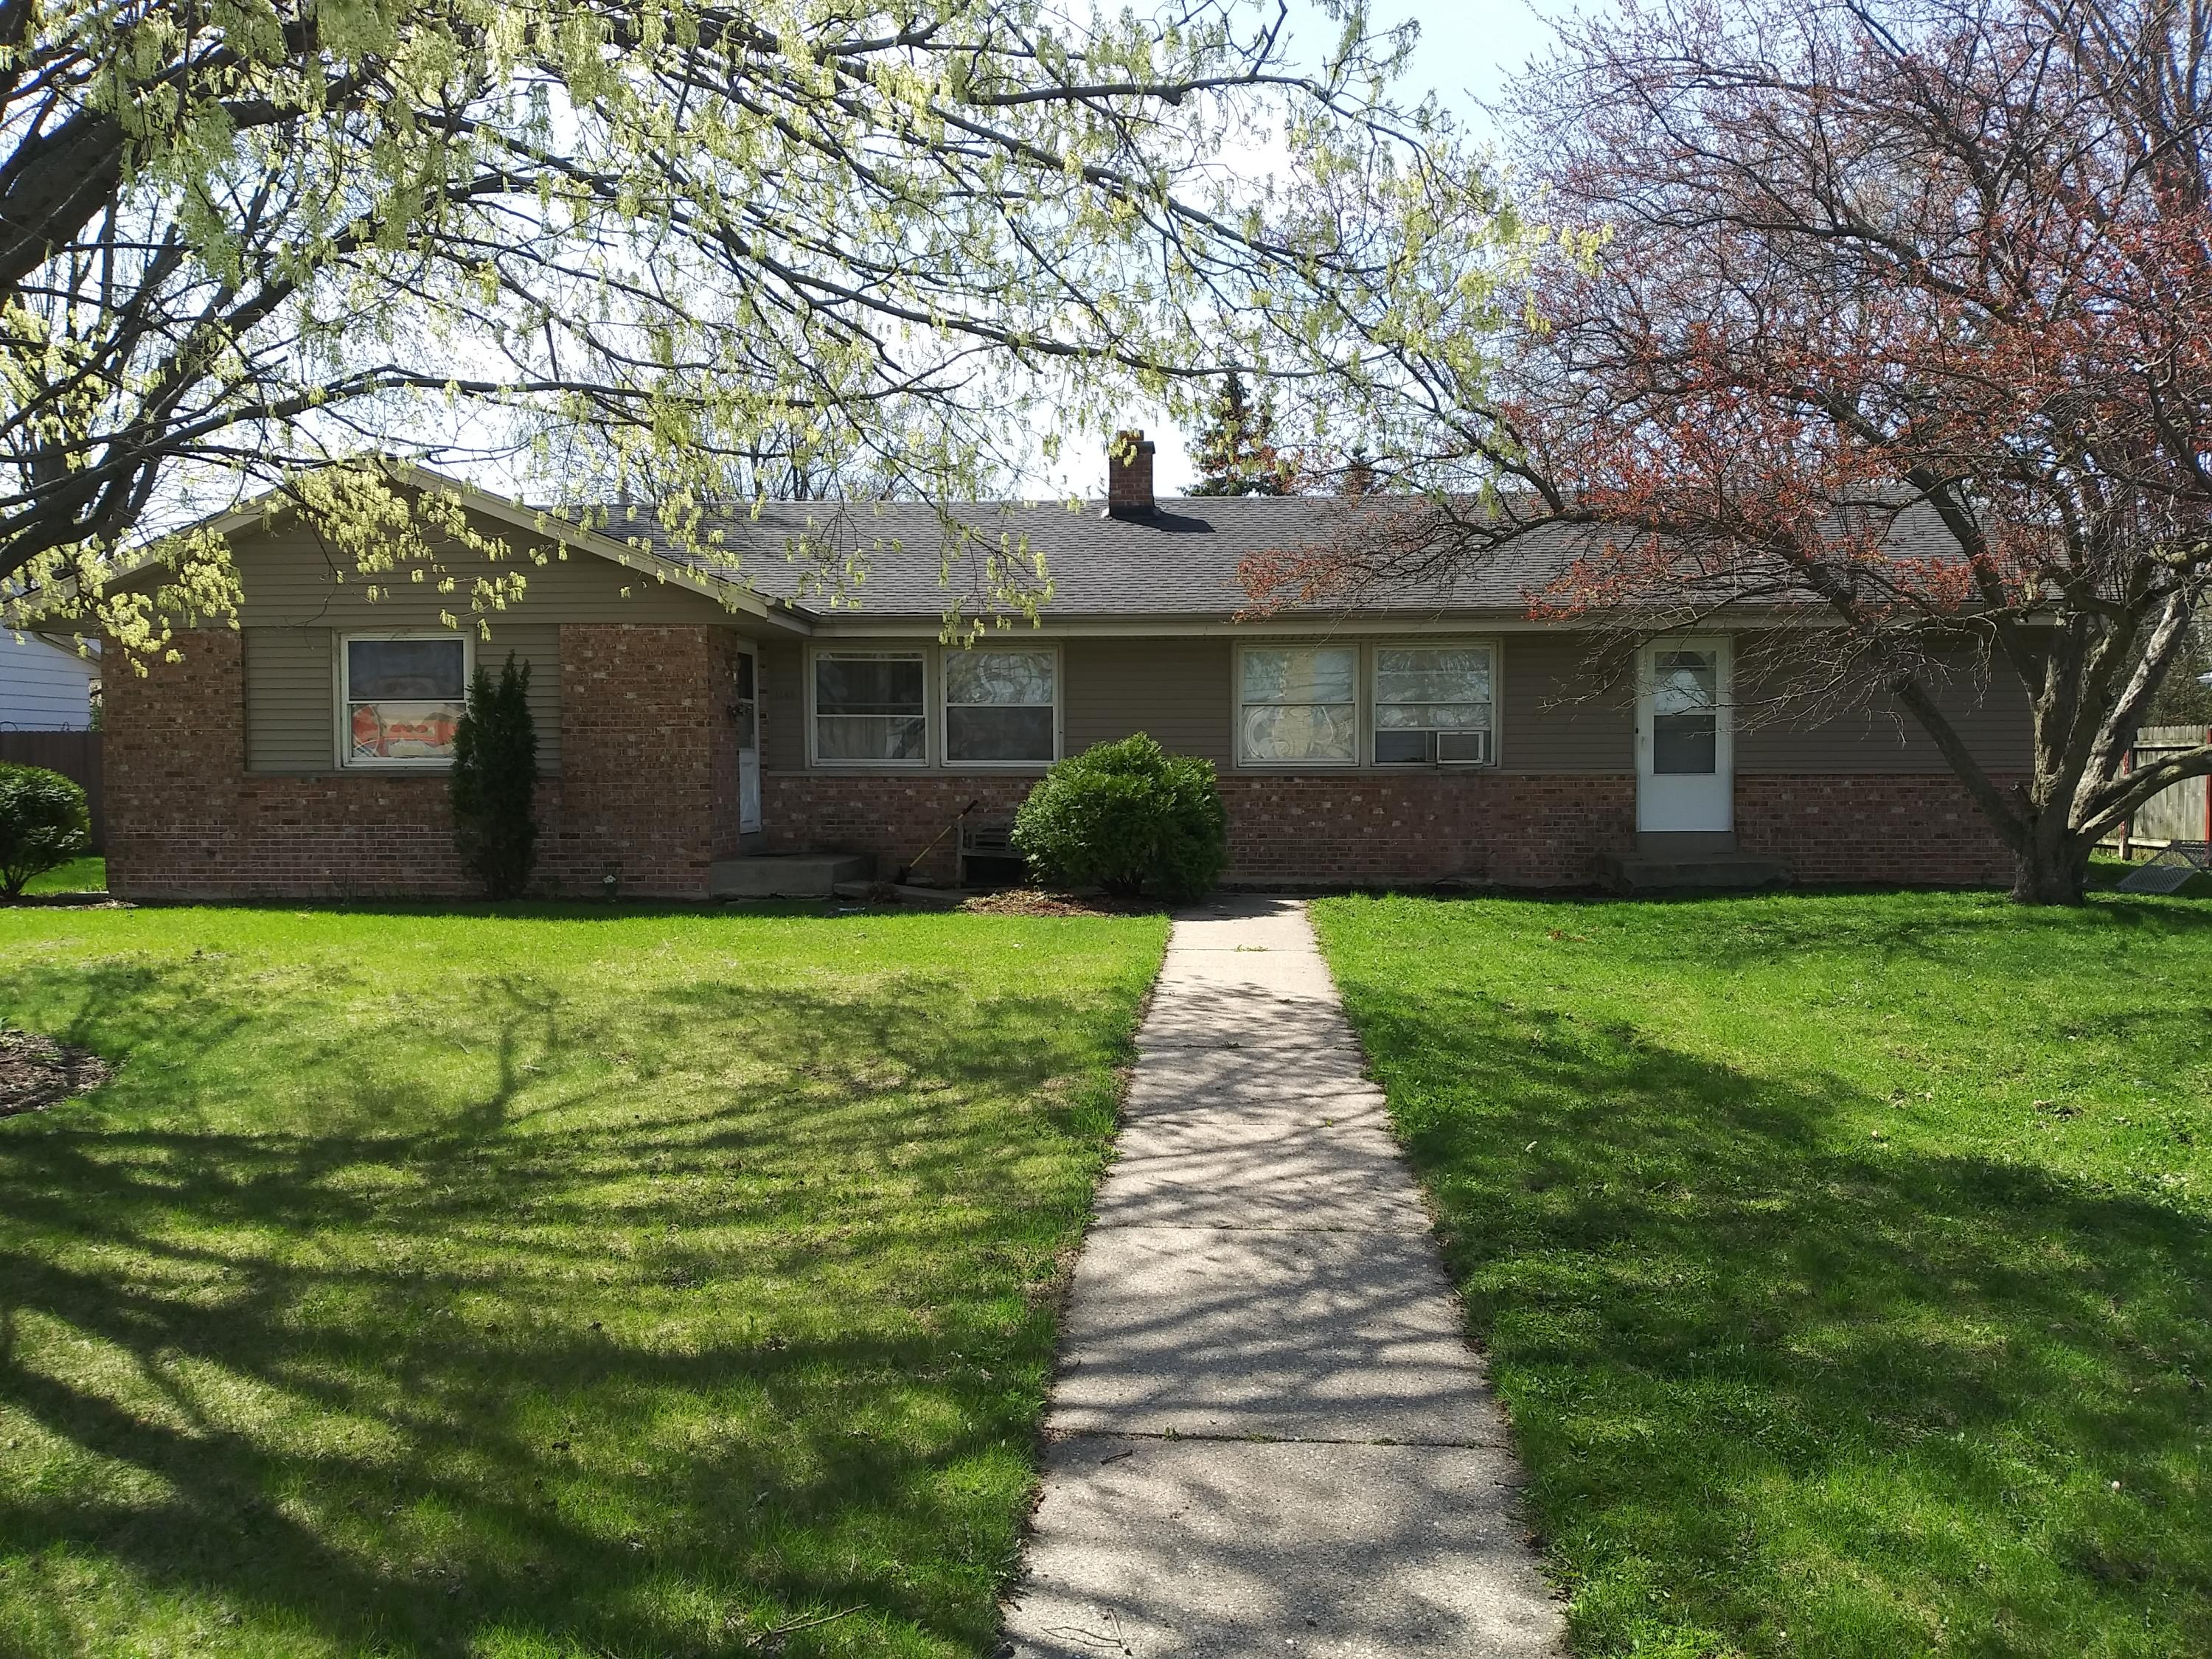 1145 Sunset Dr, Waukesha, Wisconsin 53189, 3 Bedrooms Bedrooms, 5 Rooms Rooms,1 BathroomBathrooms,Two-Family,For Sale,Sunset Dr,1,1735776